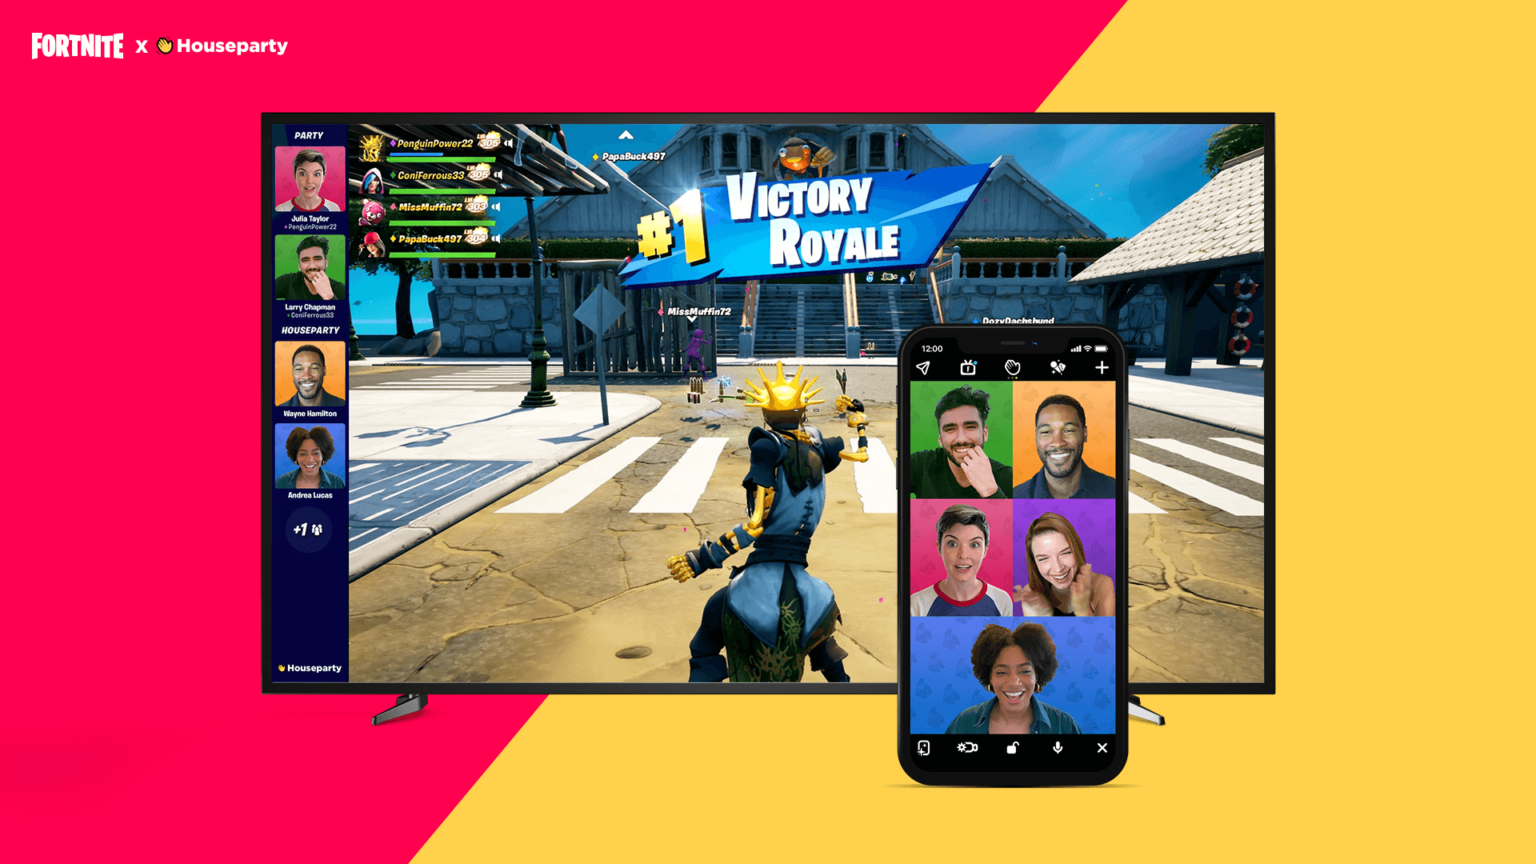 Fortnite agrega funcionalidad de video chat en el juego a través de la aplicación Houseparty para PC y PS4 / 5